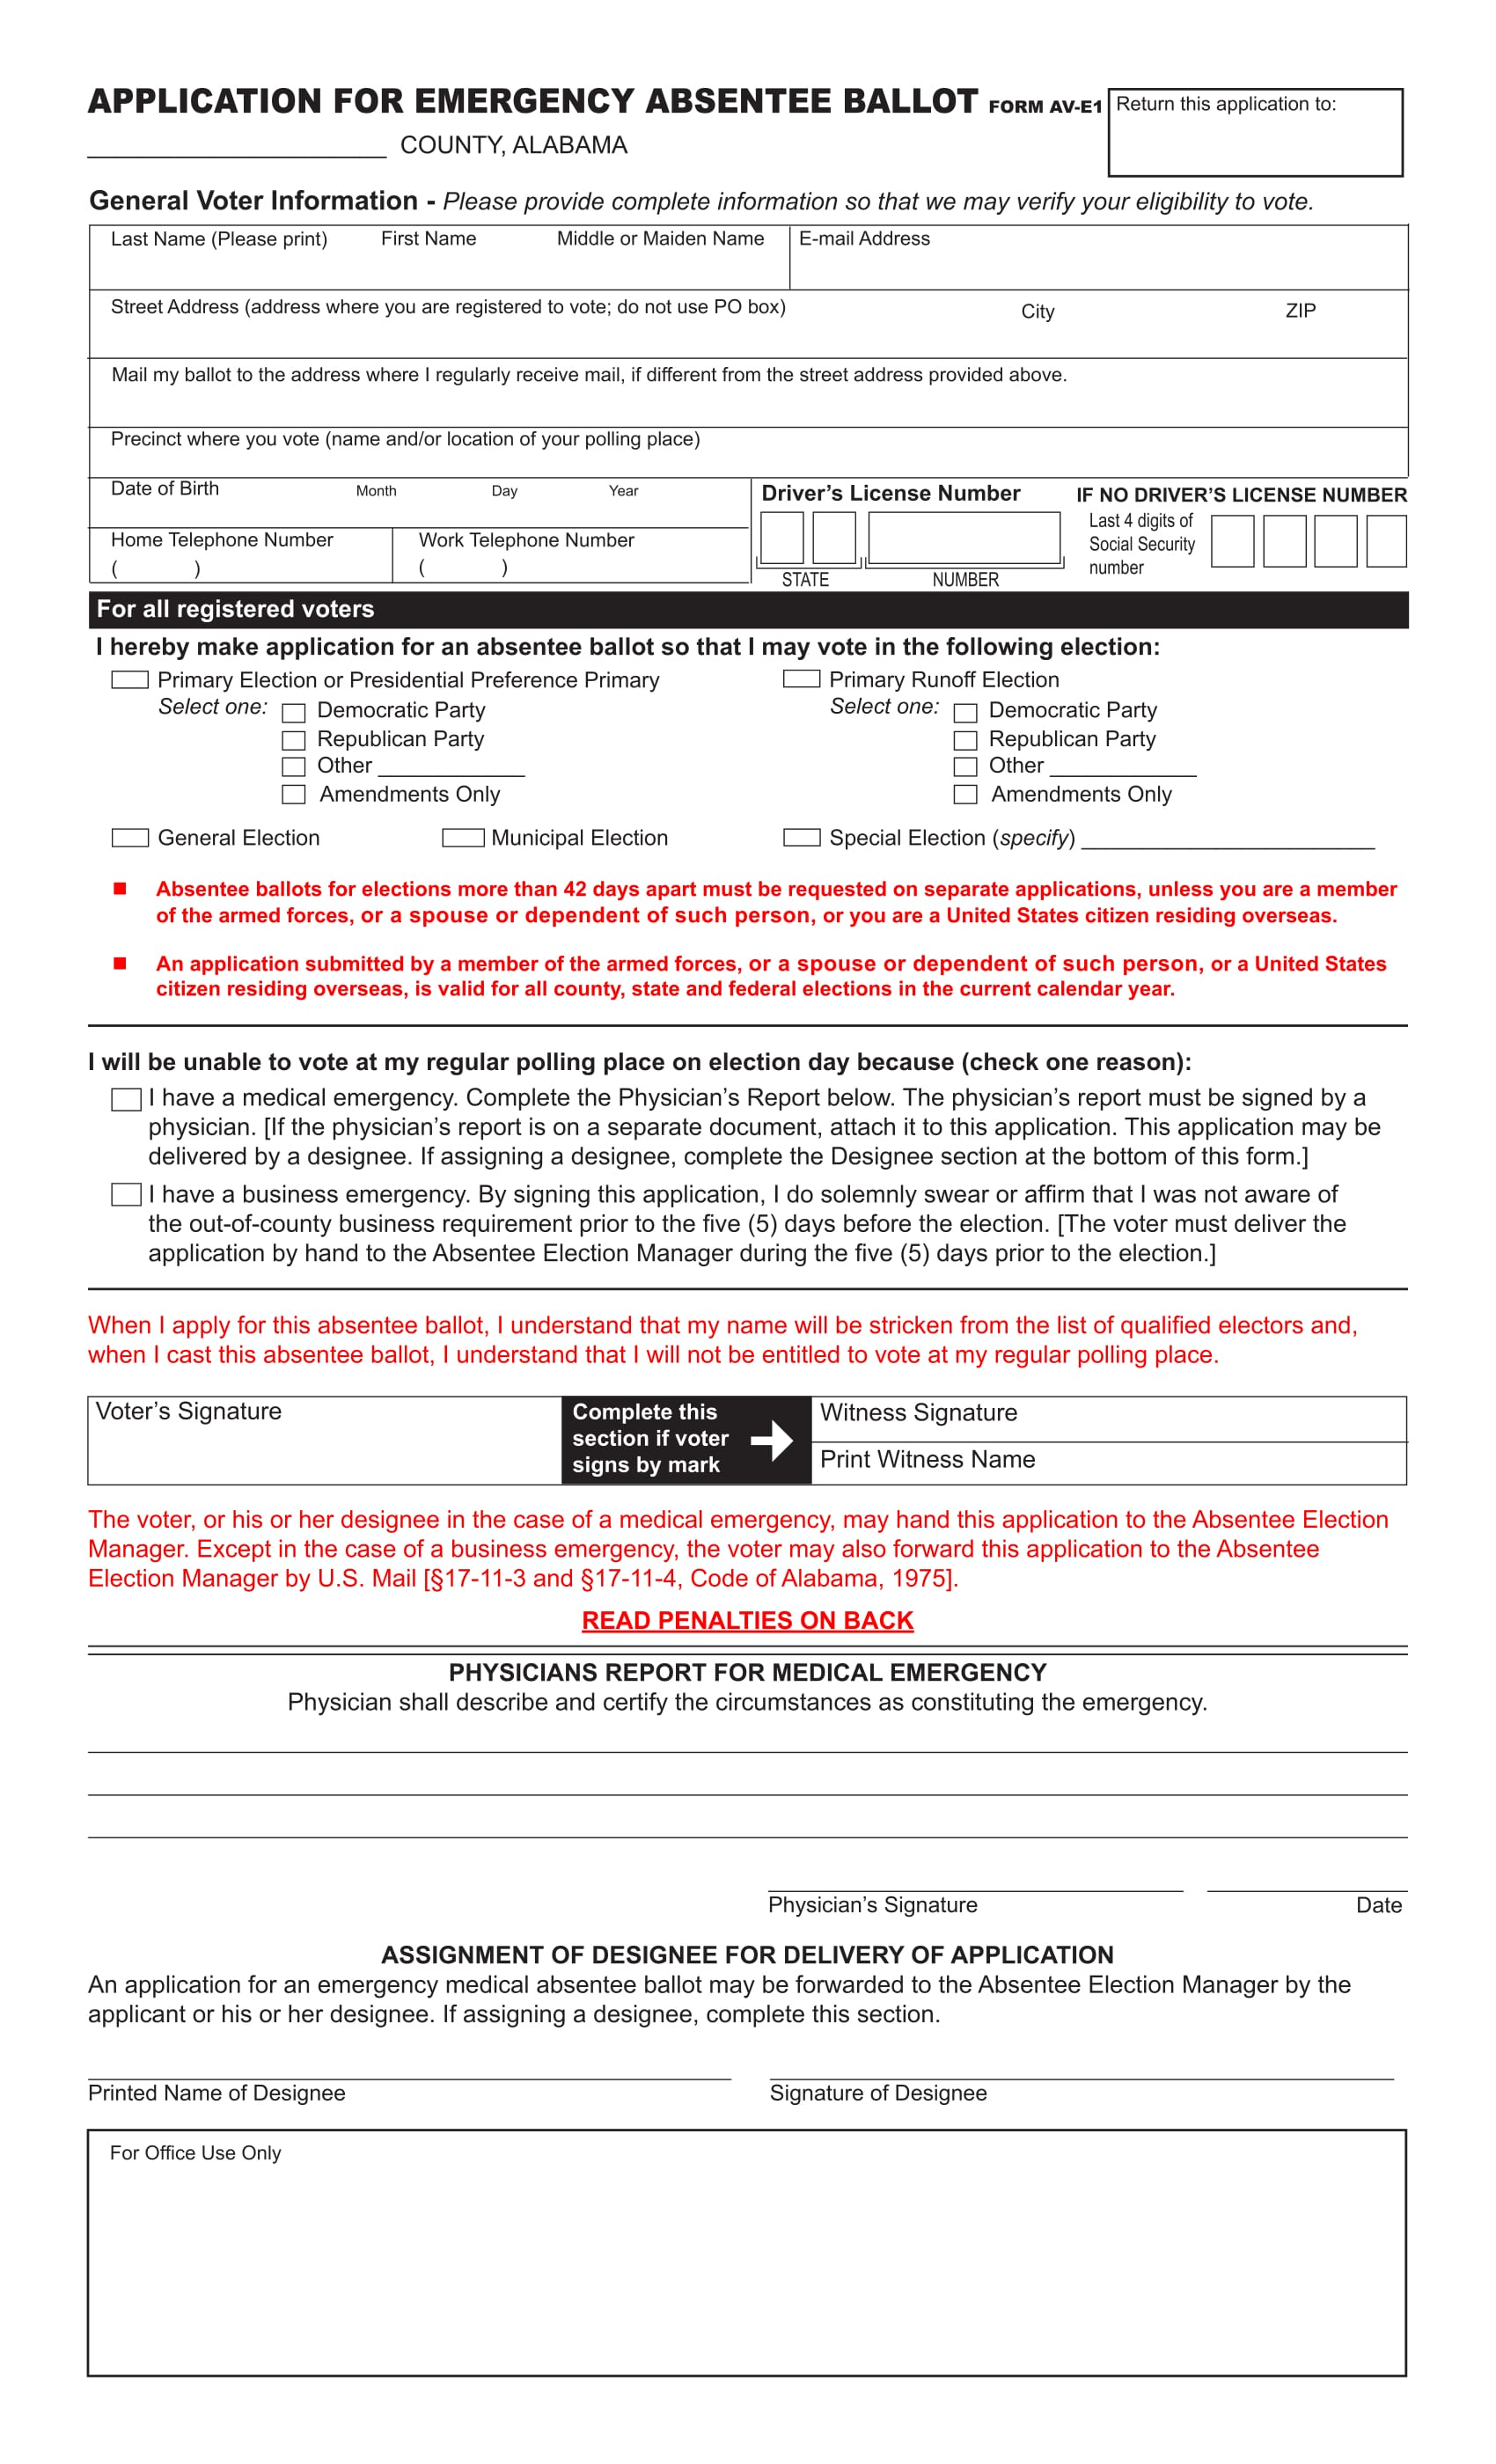 absentee ballot Kentucky registered voters may vote at the precinct on election day or, if eligible, may cast an absentee ballot by mail or in the county clerk's office prior to election day.